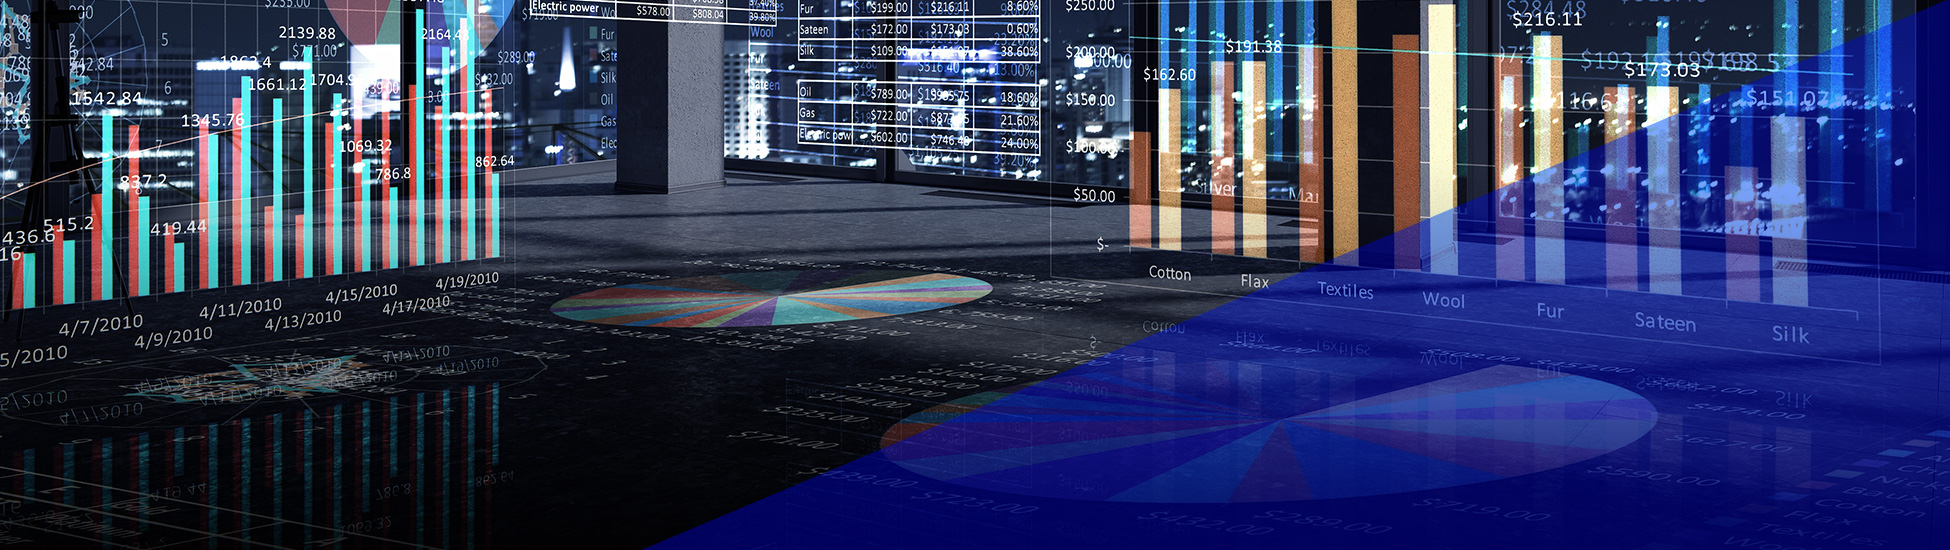 Asset Monitoring and Data Management for Industries